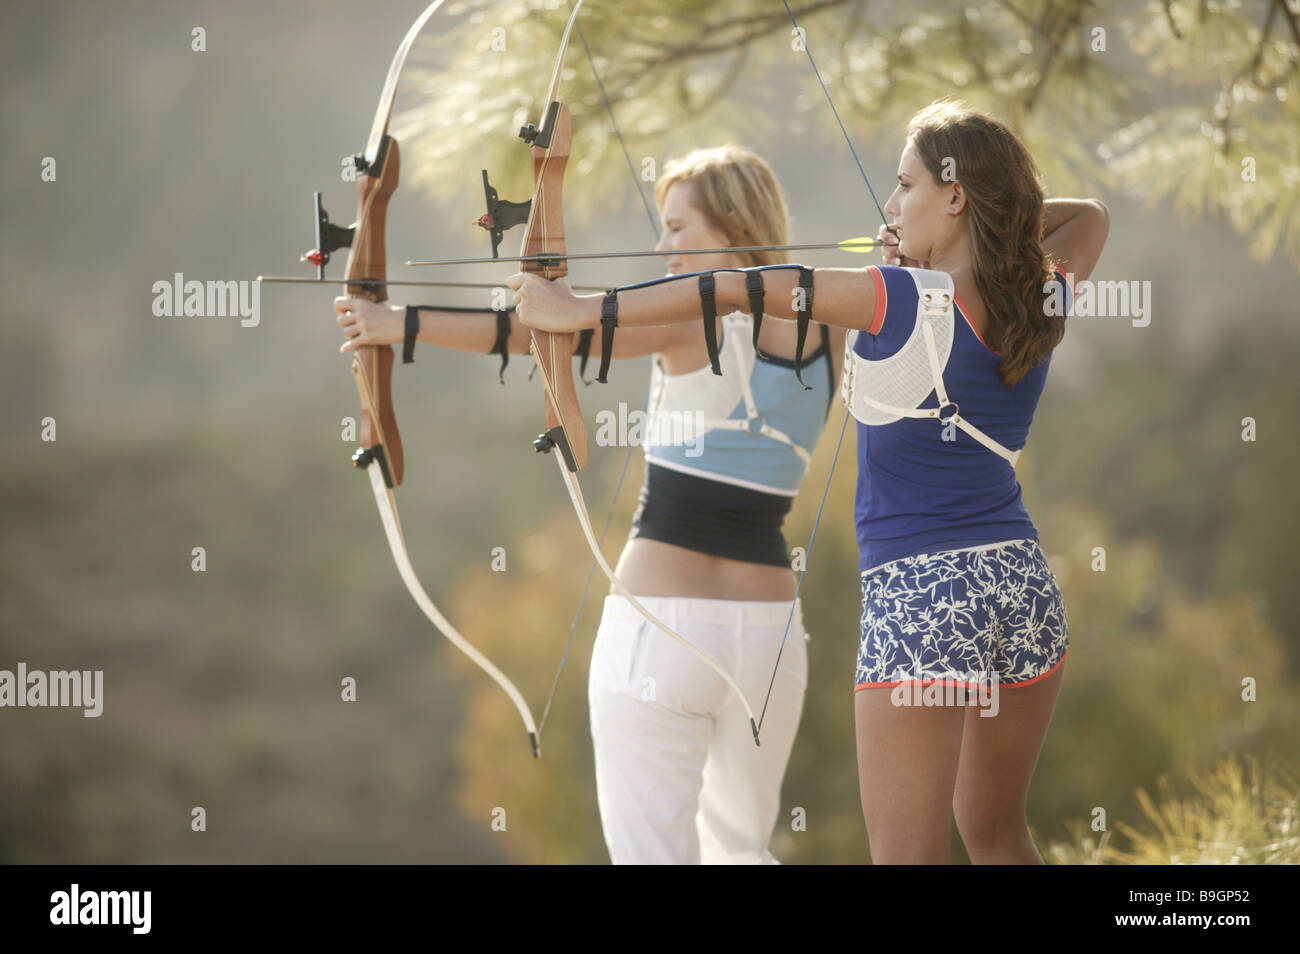 Women Stands Archery Arrow Bow Destinations Sport 18 Years 40 50 Stock Photo Alamy .bow #bow and arrow #experience points #dinusty empire #substancepainter #marmoset #gearbox #gearbox software #gio #weapons #texture #digital 3d #hardsurface #fan art #anime #manga #3d modeling #3d art #comic art #beetle #beetle arrow. https www alamy com stock photo women stands archery arrow bow destinations sport 18 years 40 50 years 23110894 html